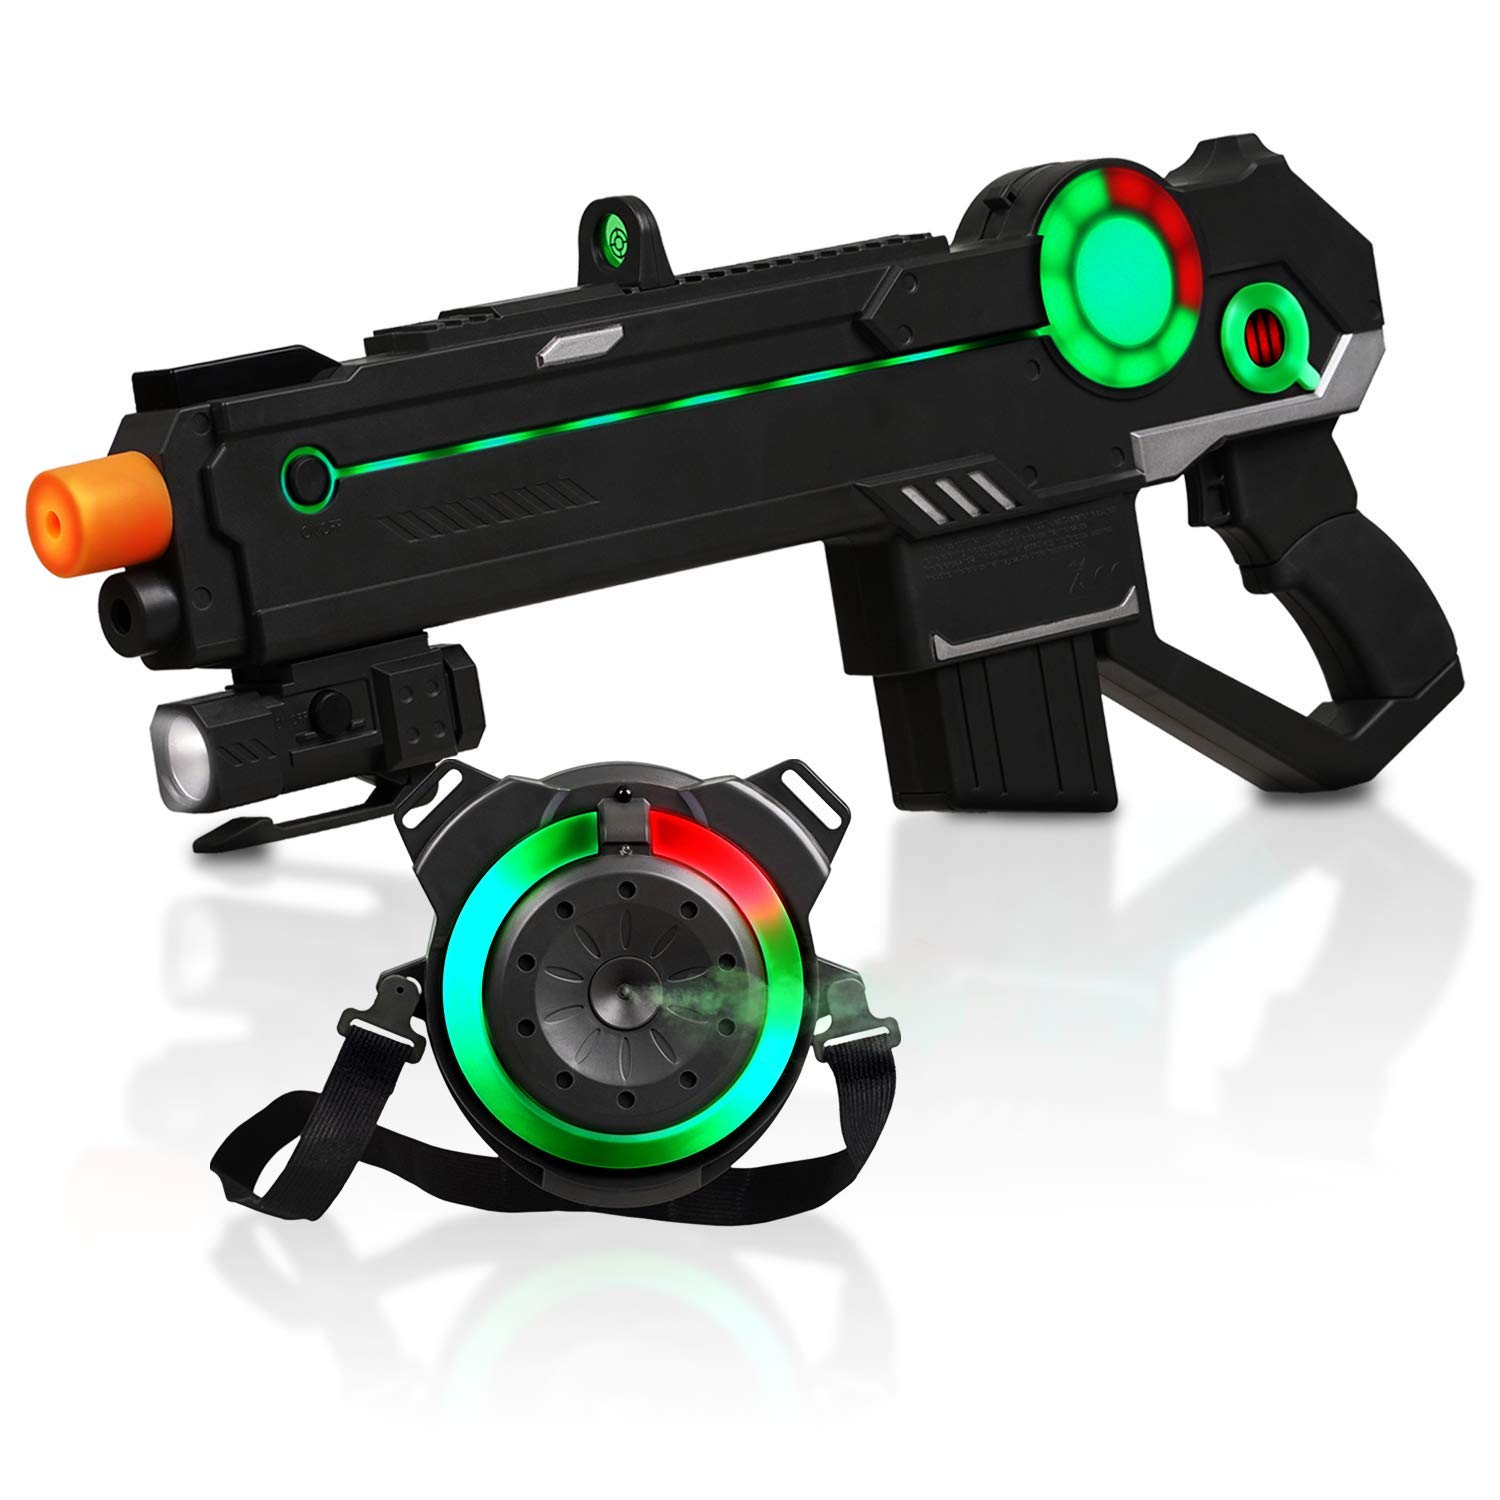 Ranger 1 Laser Tag Reality Gaming Kit with 4 Guns, 4 Vests, 225ft Shooting Range, Unique LED Heads-Up Display, World-First 100% Gun/Vest Synchronization, Smoke-Like Water Vapor Emitter, Built-To-Last- by Strike Pros (Image #1)